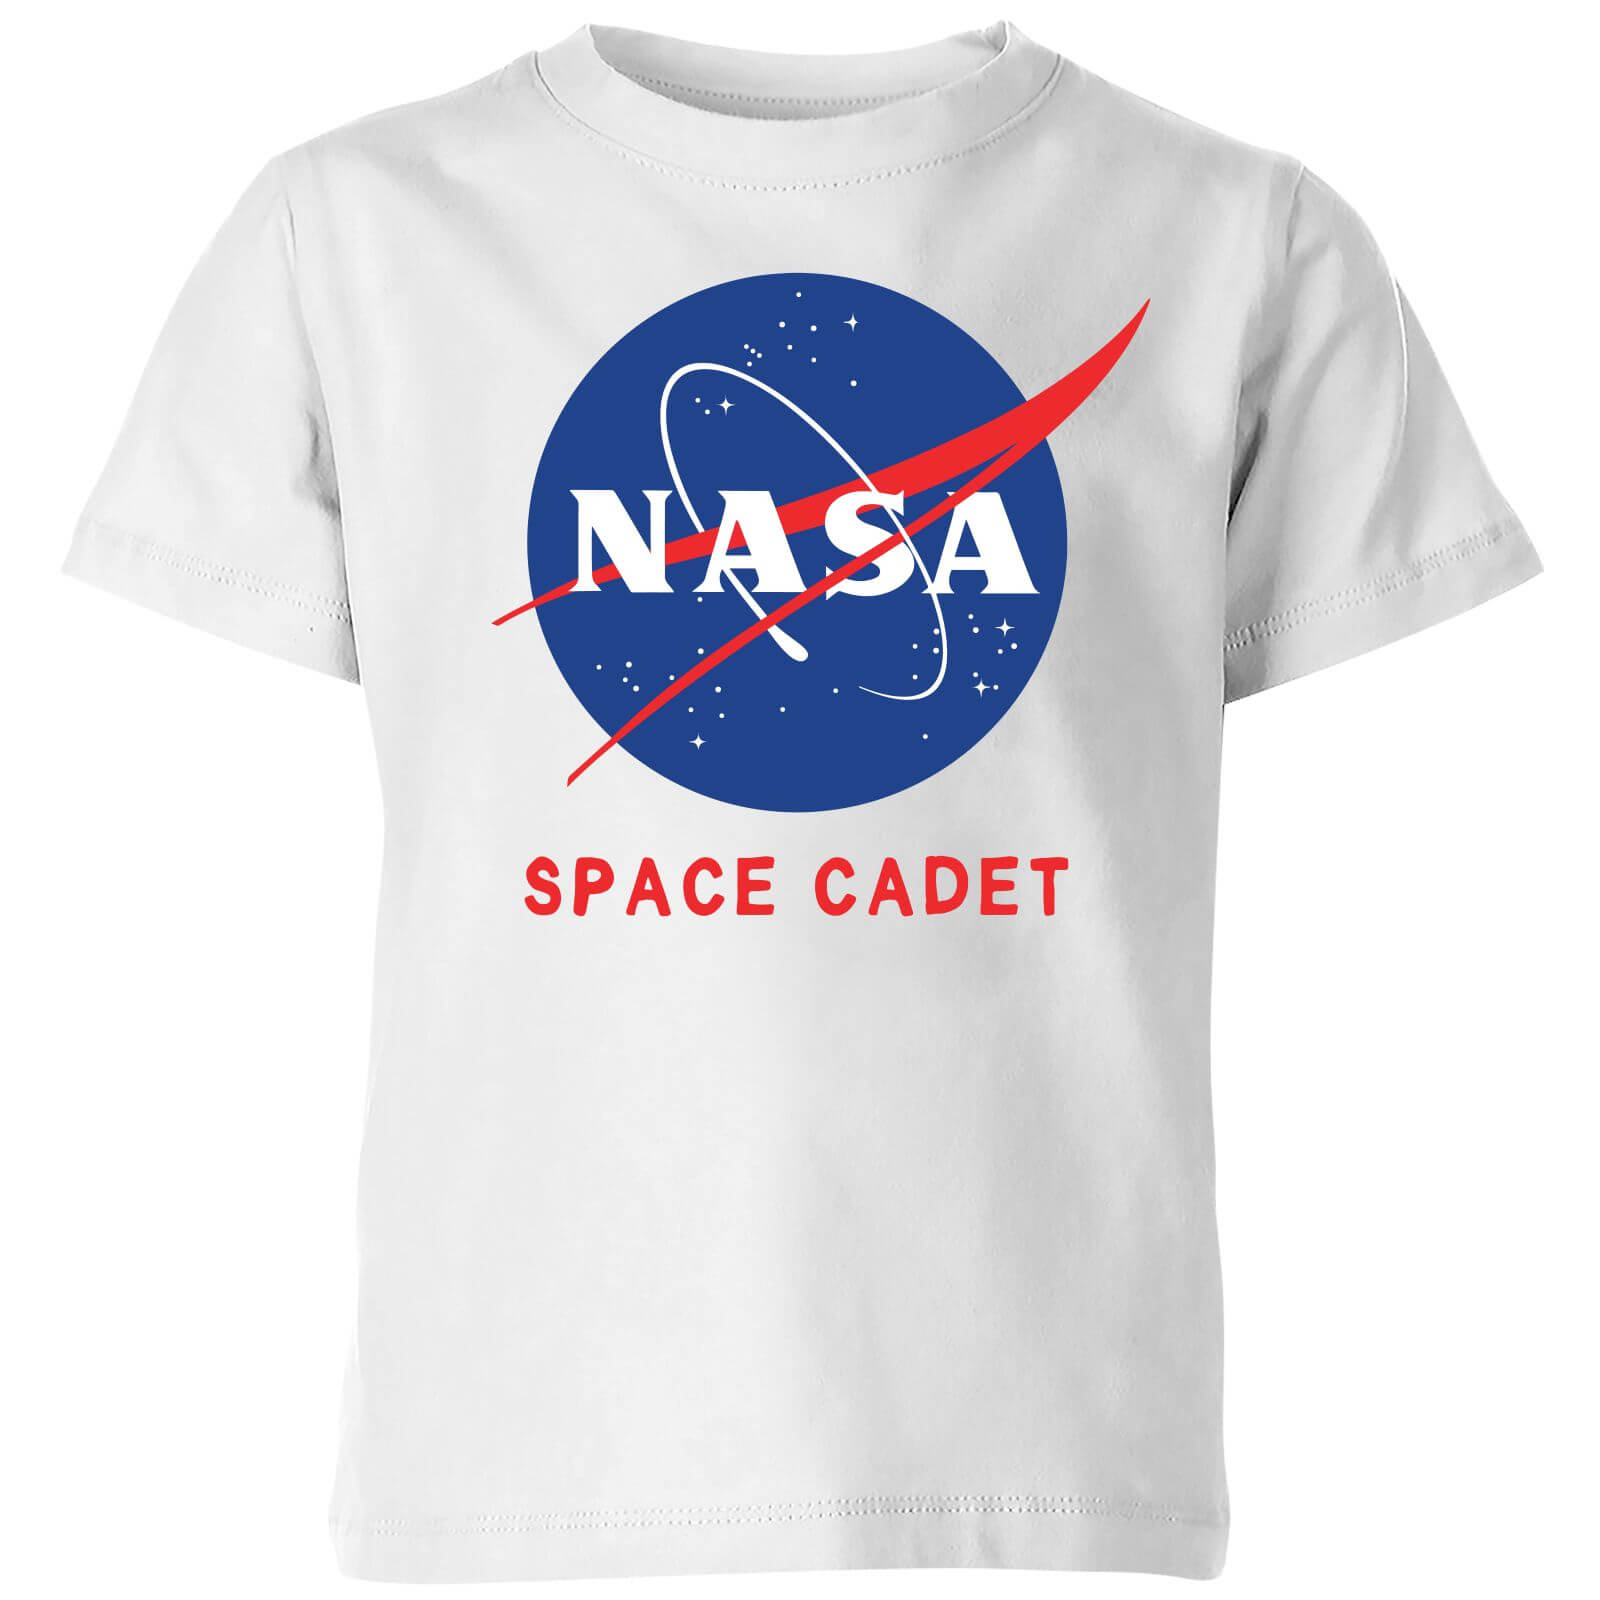 Nasa Space Shirt Logo Kids' Cadets T WhiteIwoot MUqSzVp